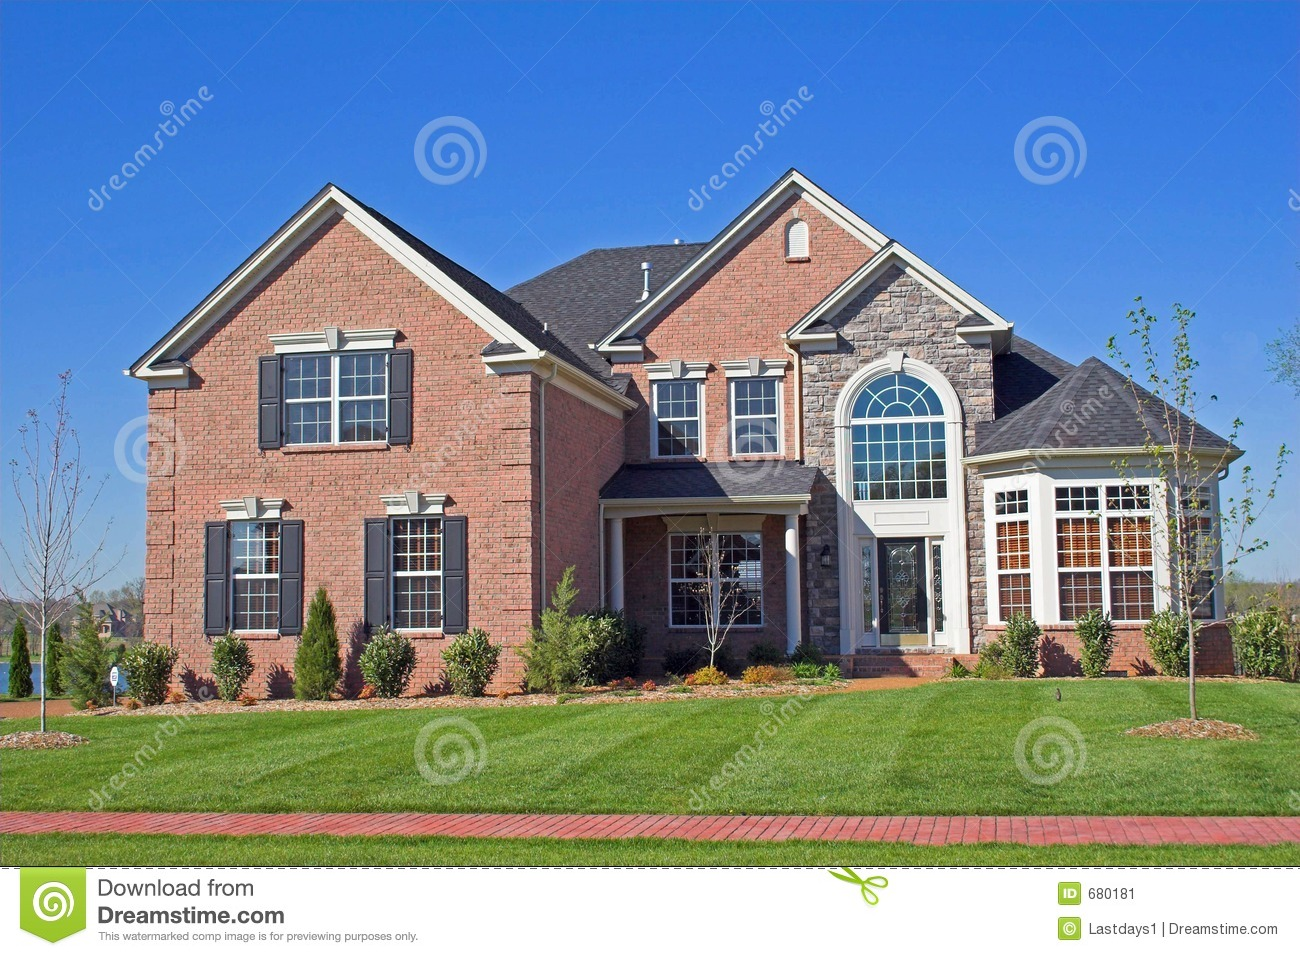 Beautiful homes series 1d stock image image 680181 for Home beautiful images